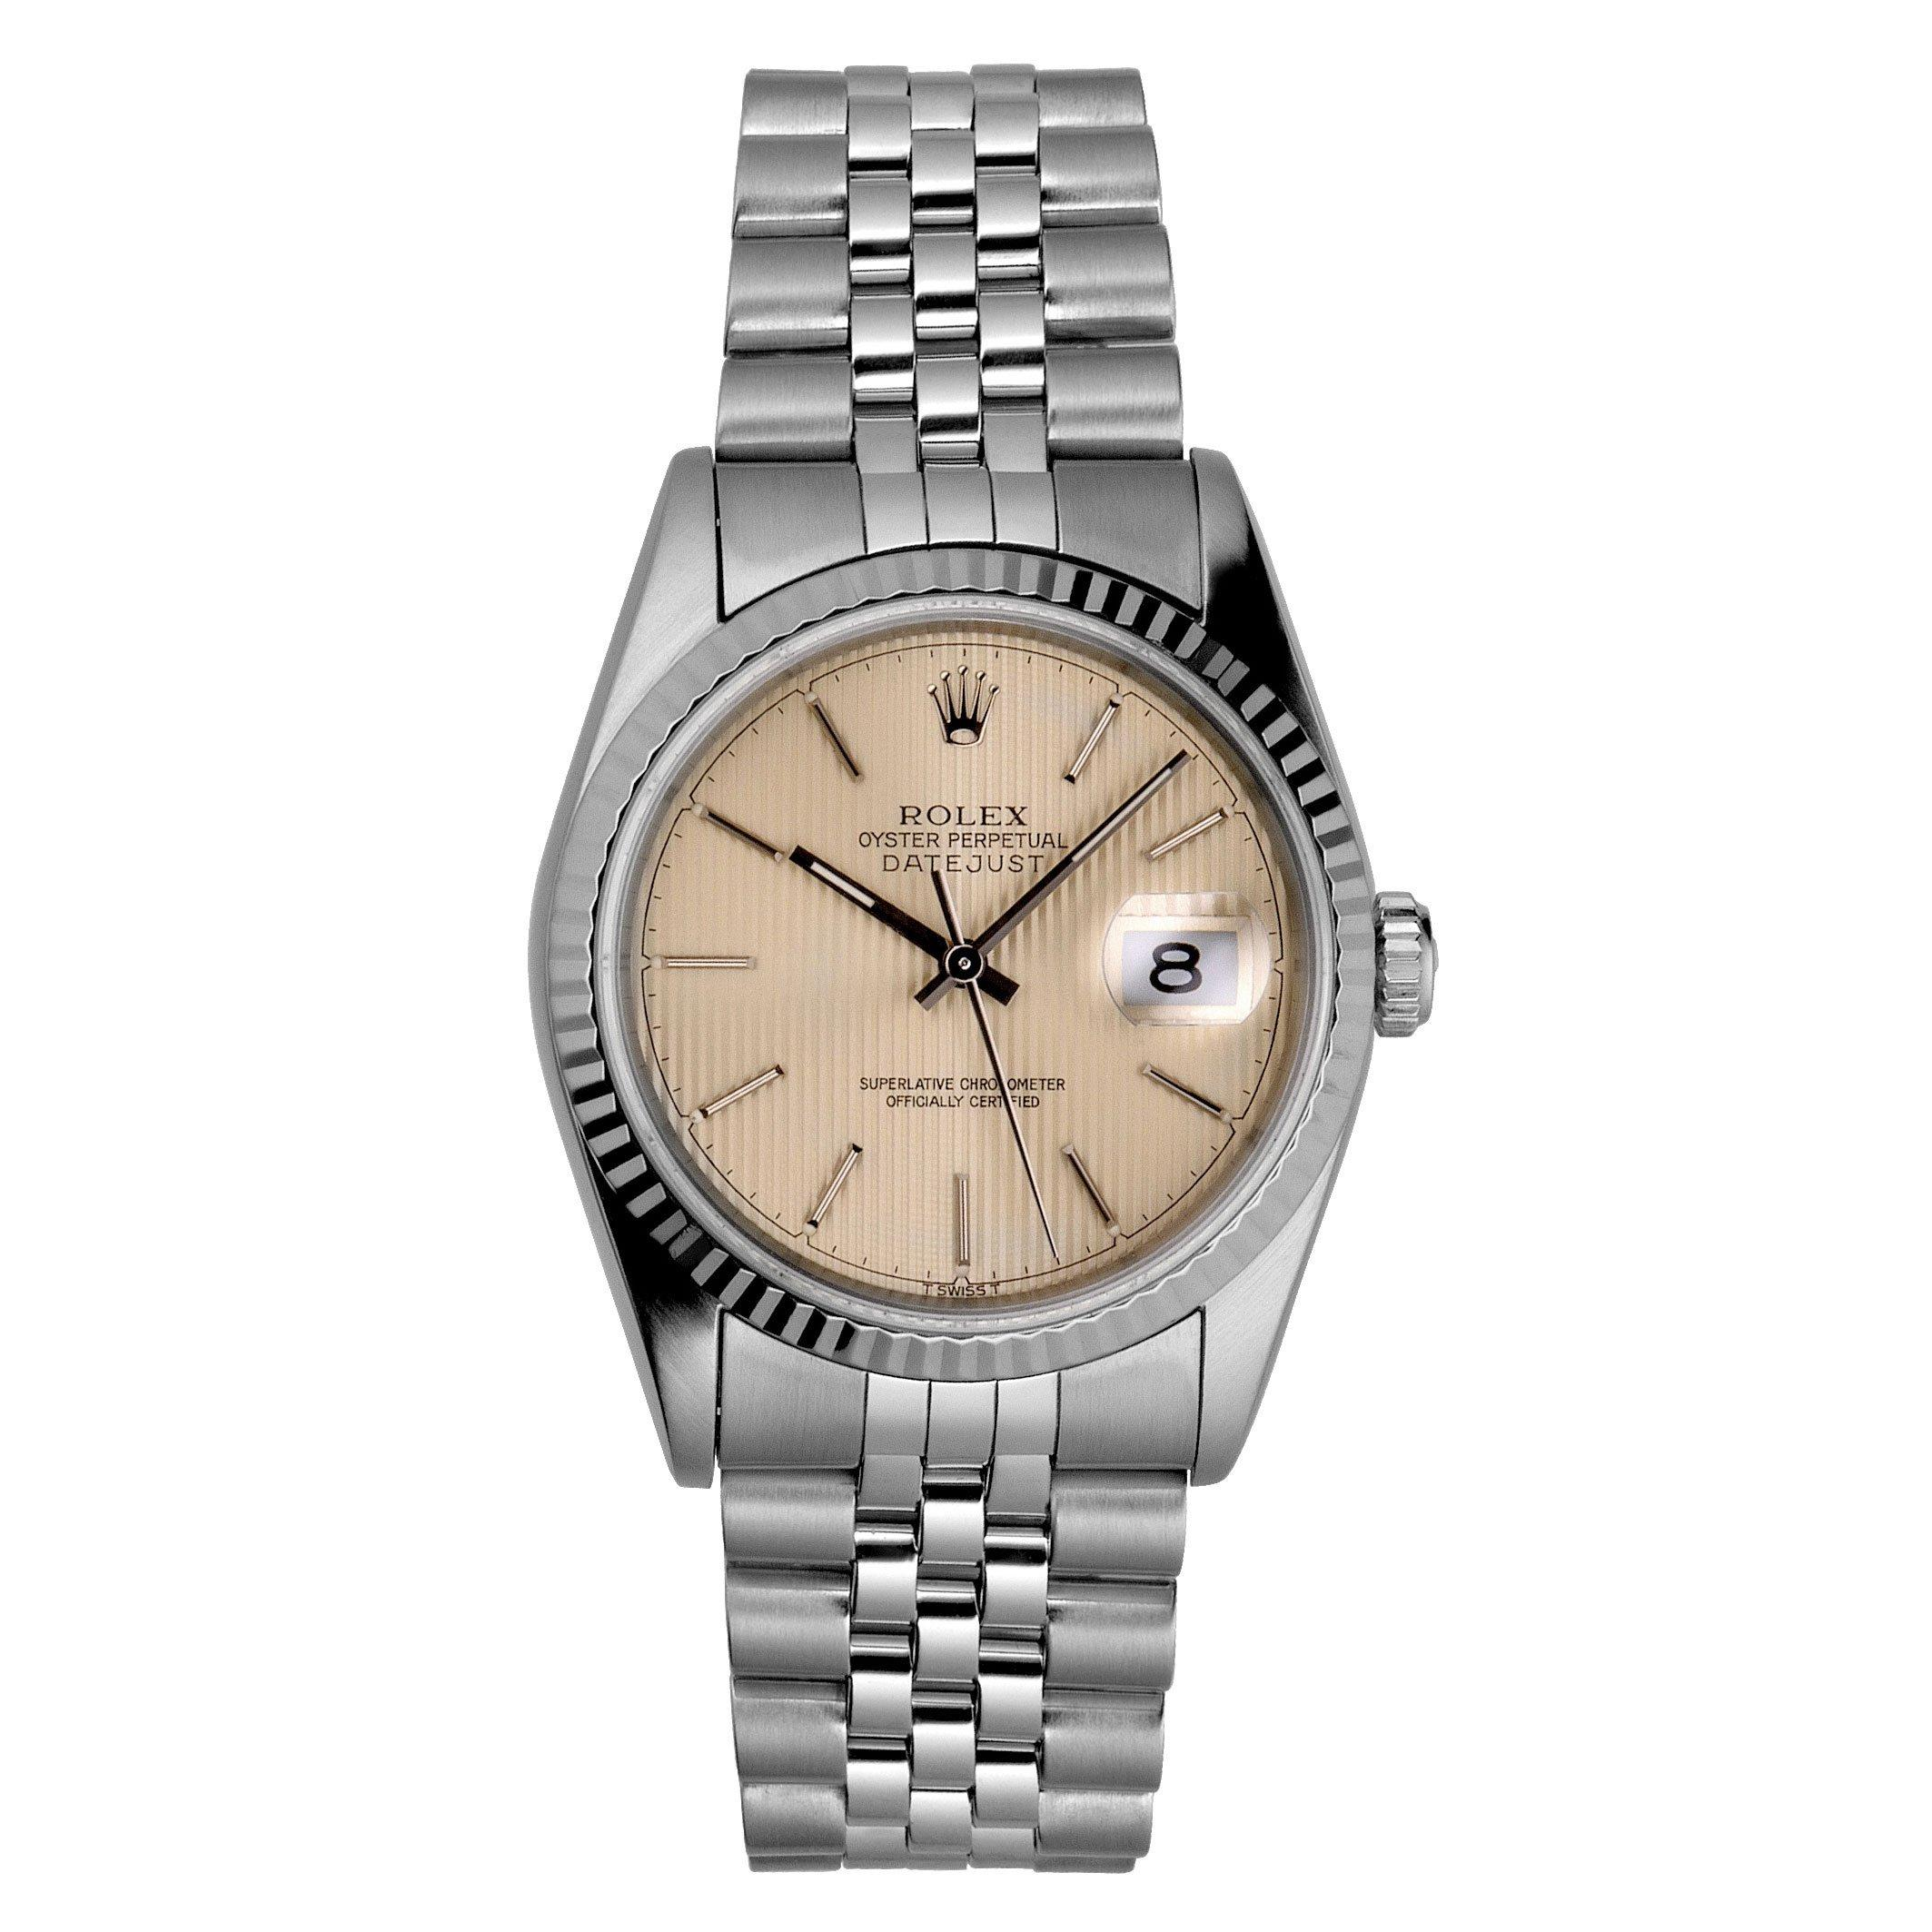 Rolex Pre-Owned Datejust Automatic Men's Watch